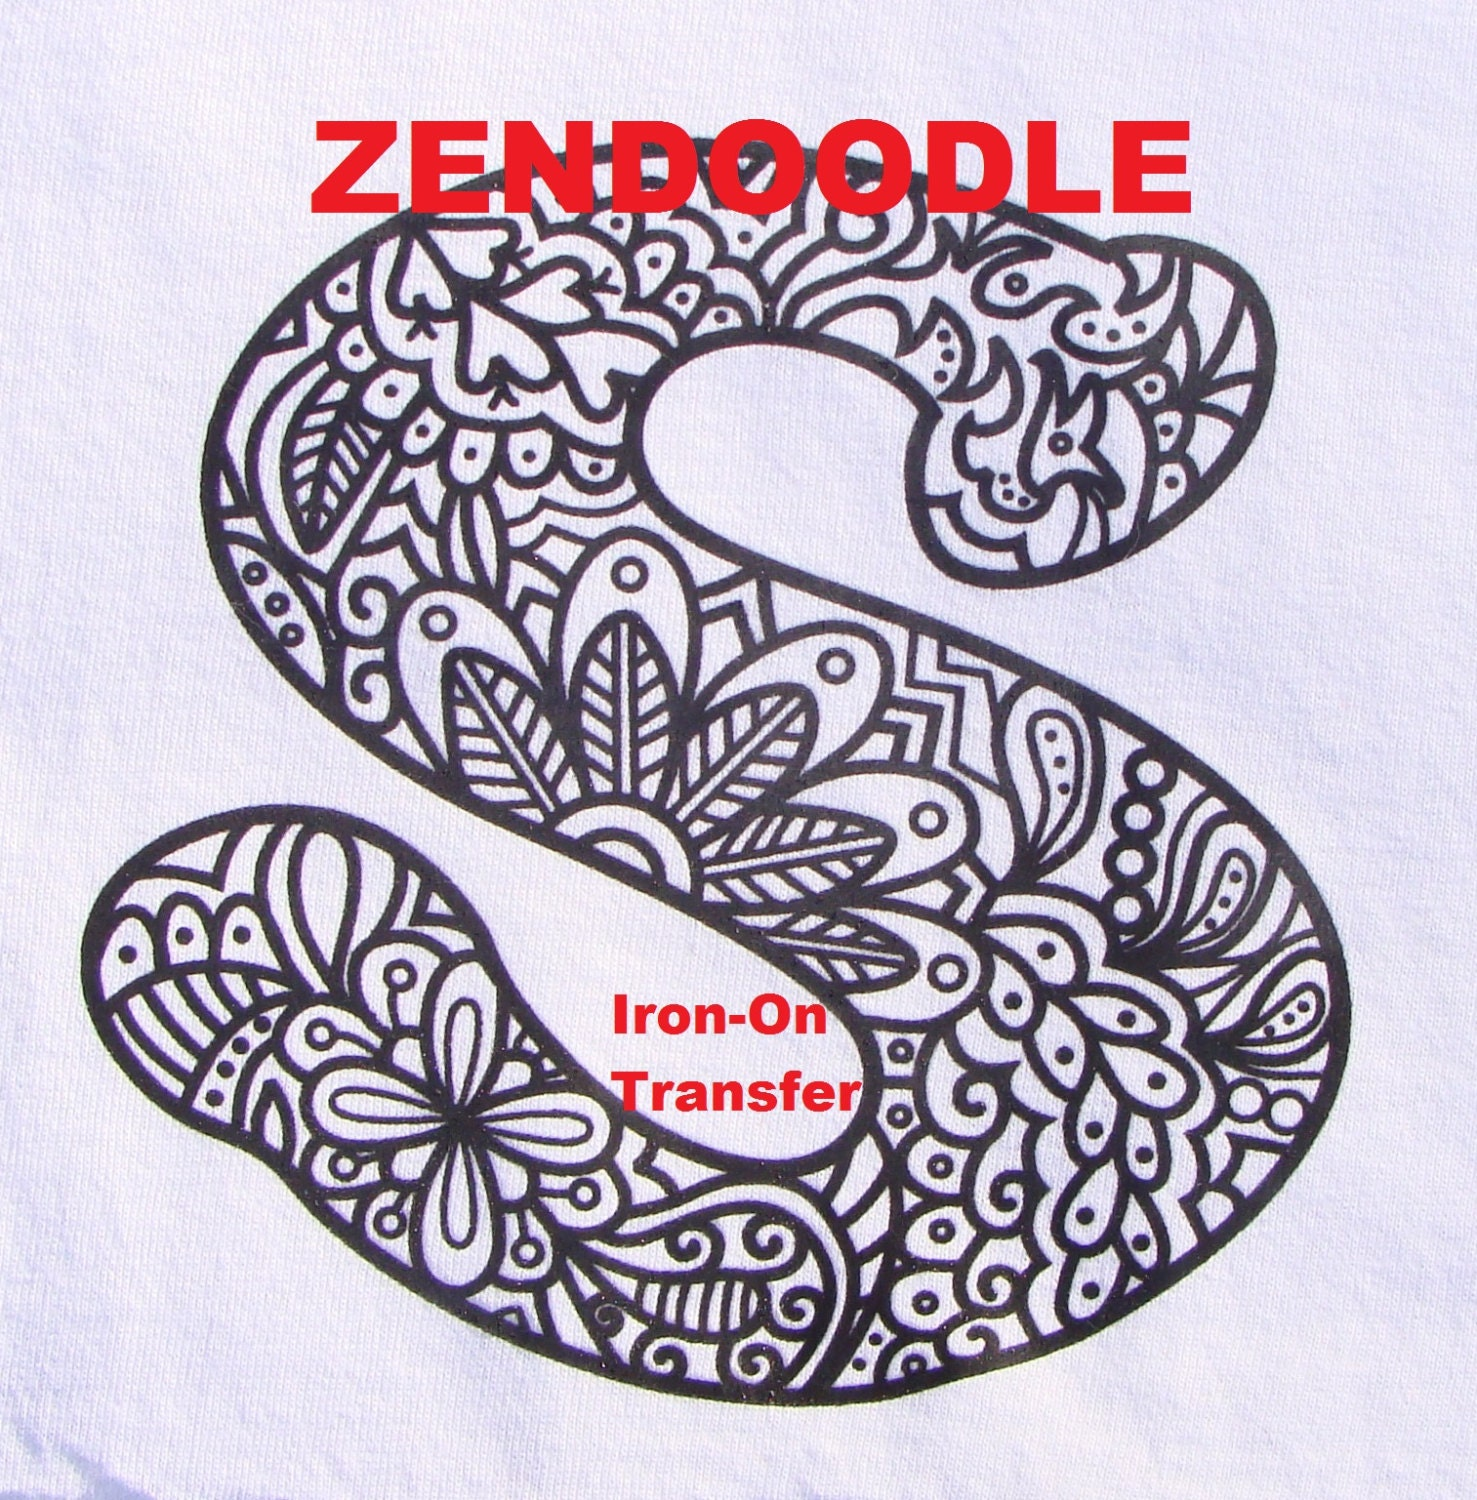 Design your own t-shirt coloring page - Letter S Transfer Iron On Heat Press Adult Coloring Page Zendoodle For T Shirts Totes Diy Color With Fabric Markers Personalized Party Favor